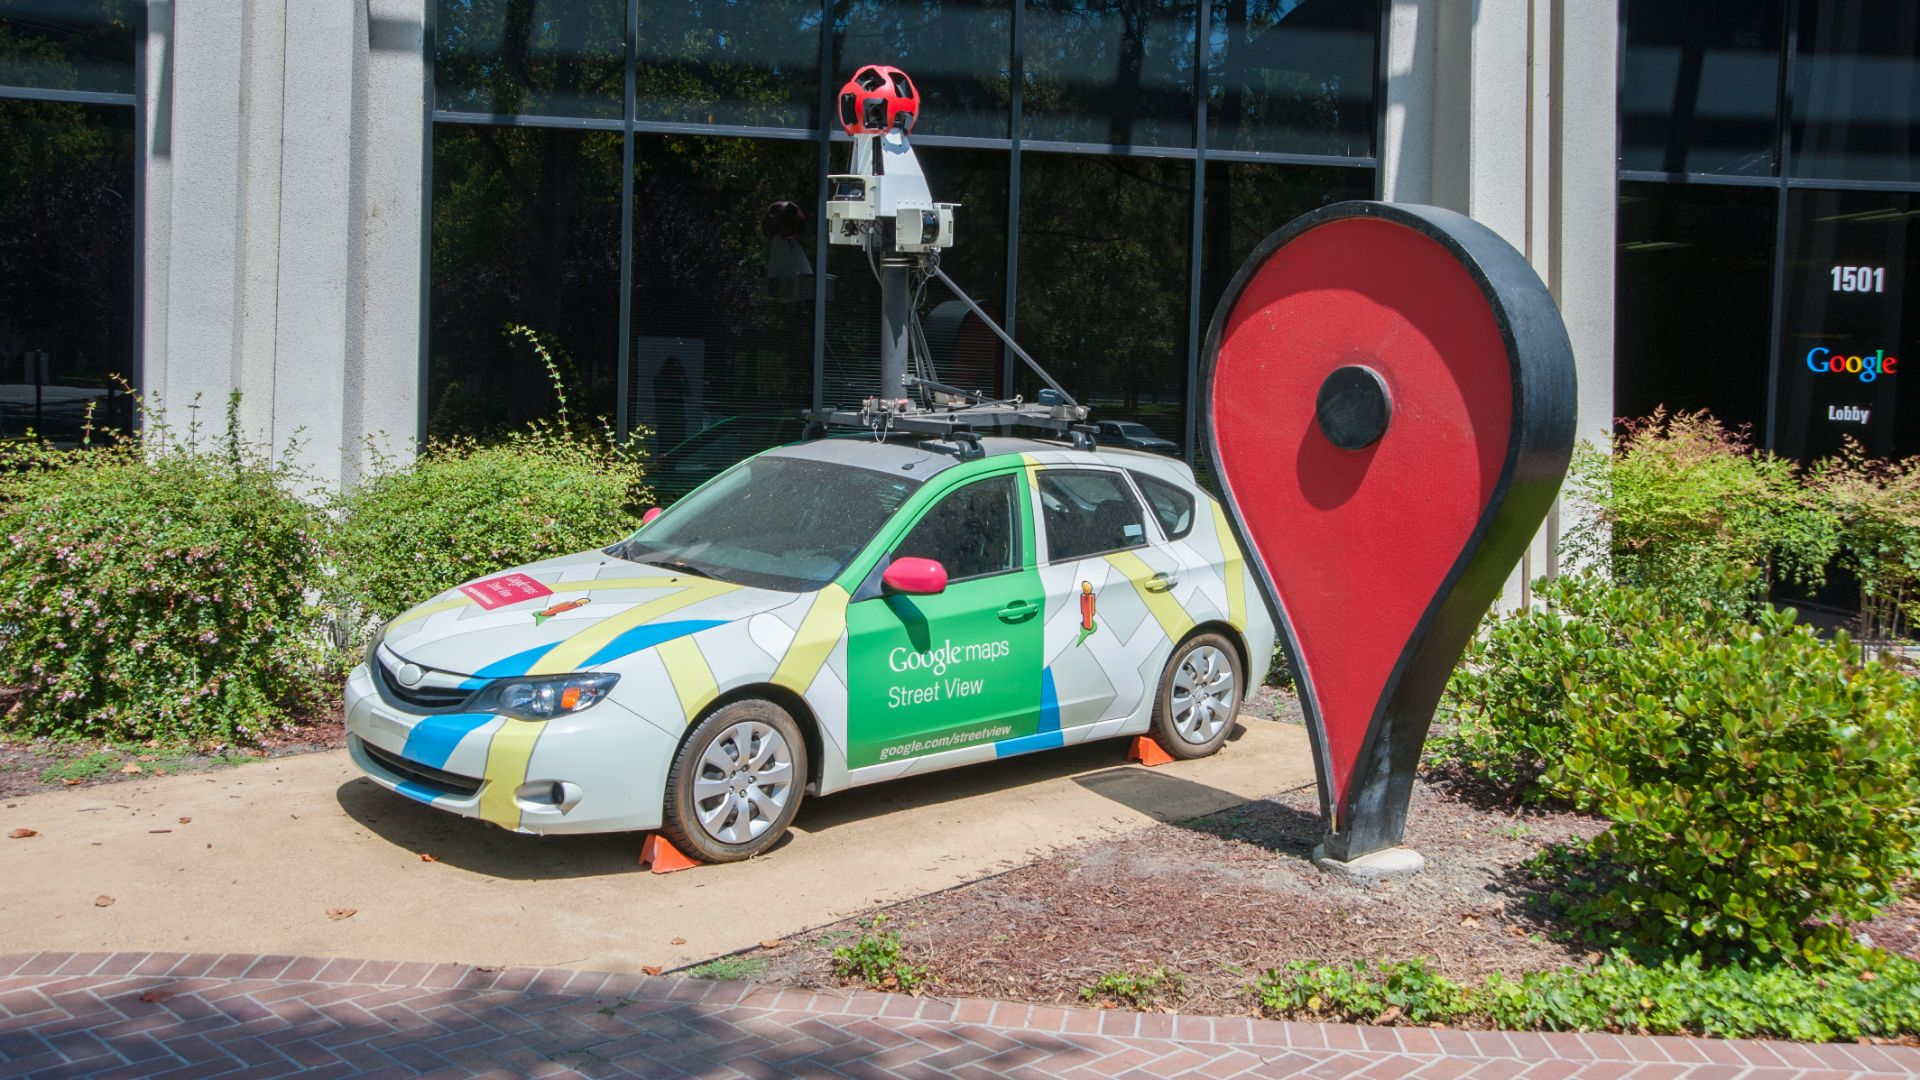 Google street view cars rack up 10 million miles